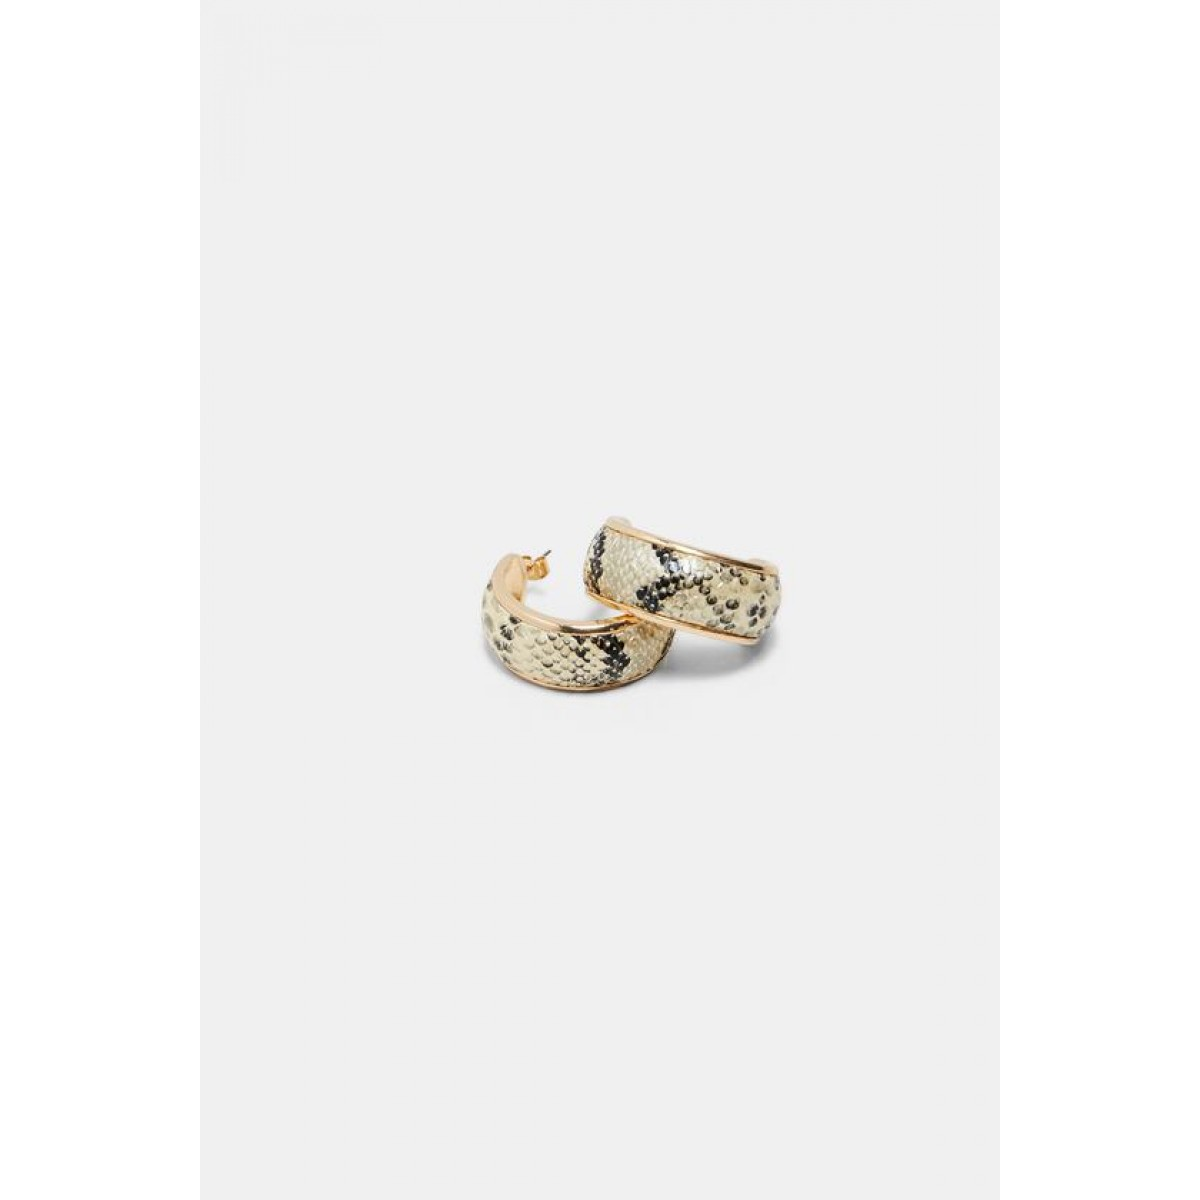 Zara Faux Snakeskin Print Hoop Earrings